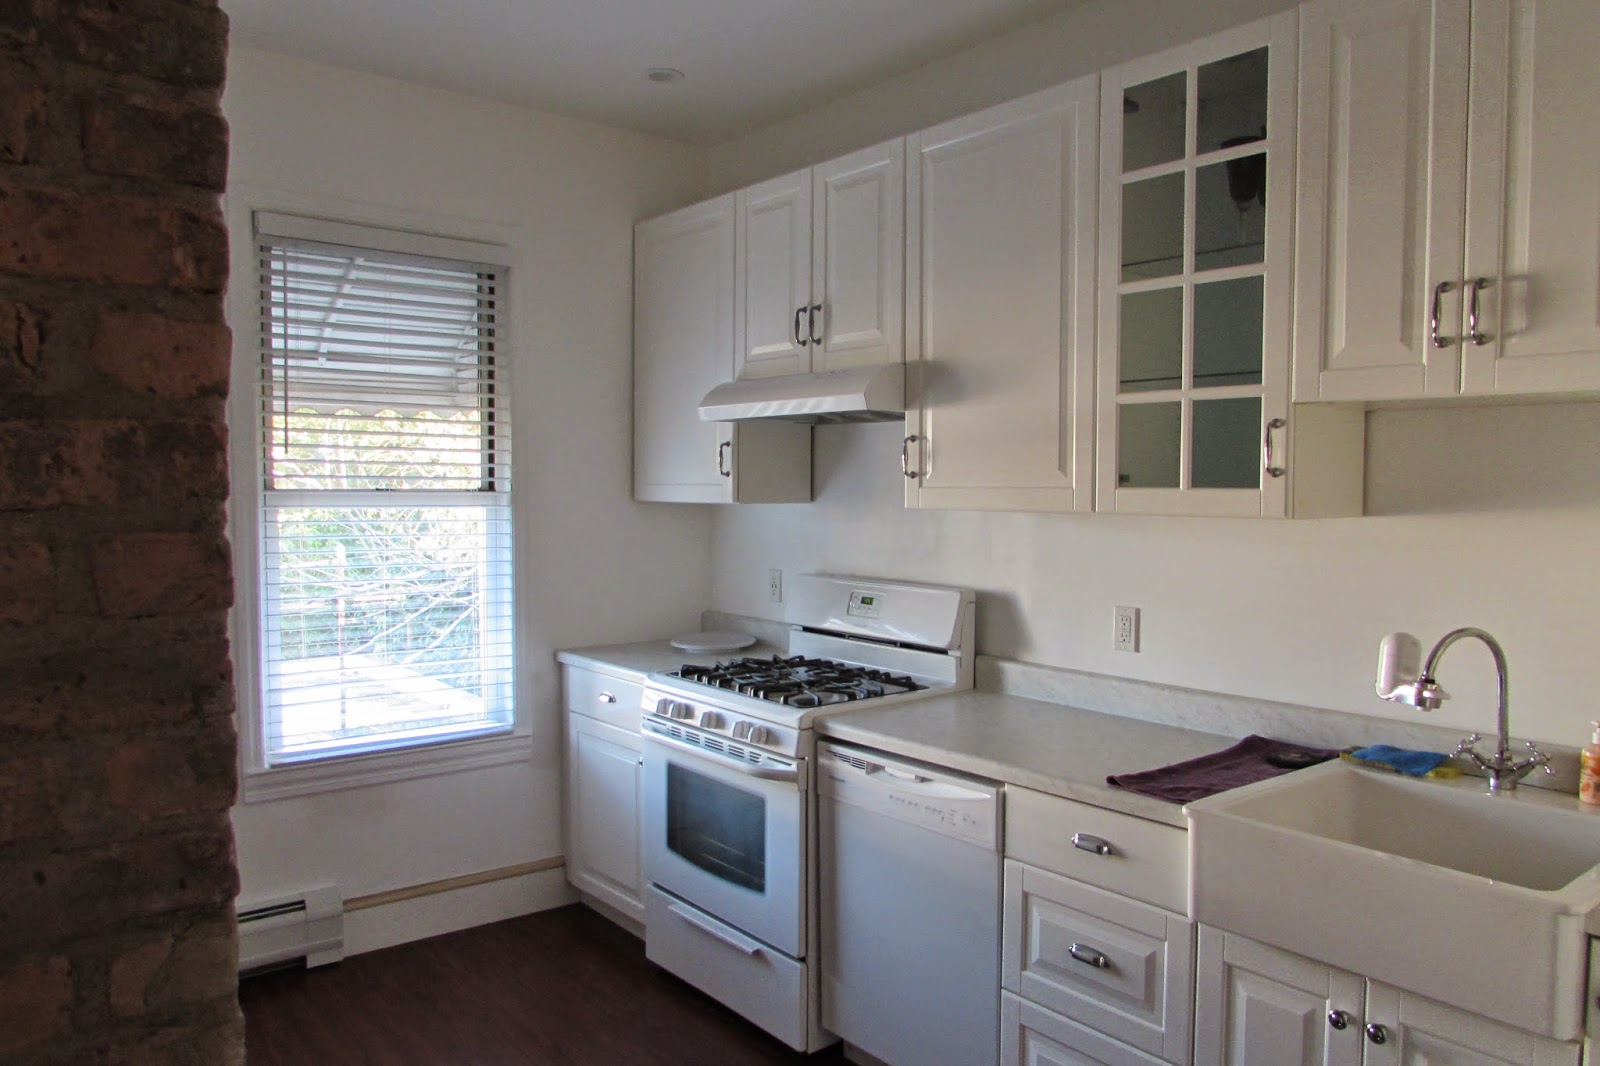 WINDSOR TERRACE APARTMENT FOR RENT $2900